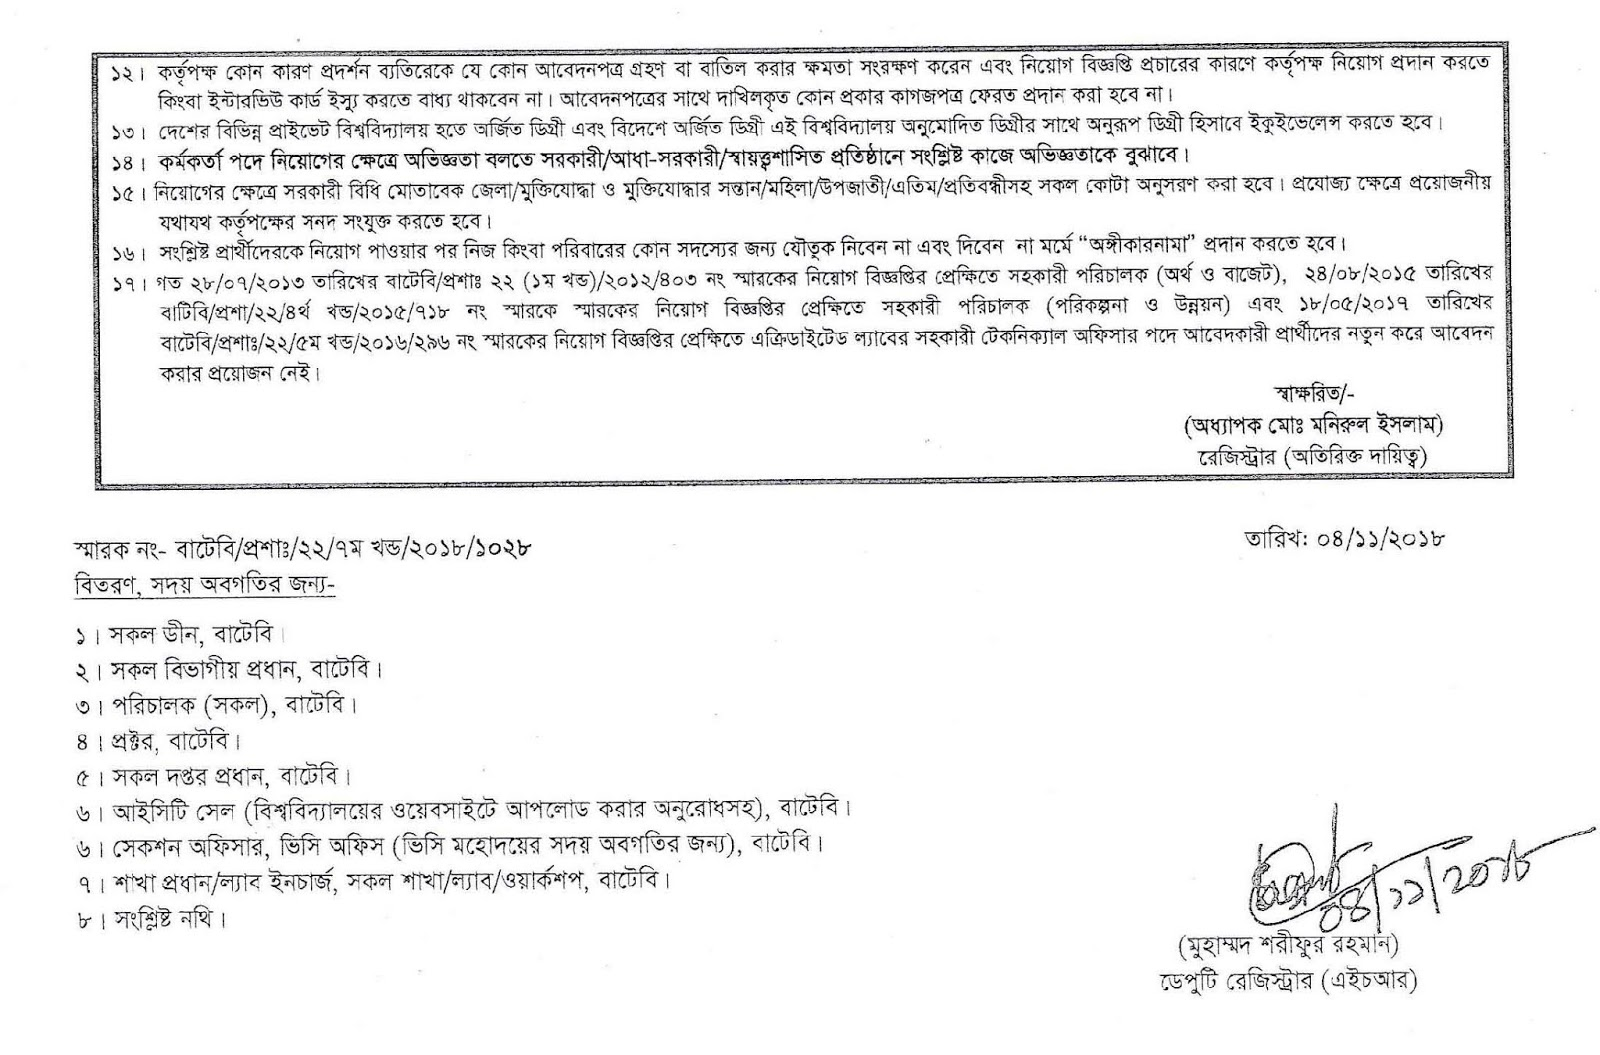 Bangladesh University of Textiles (BUTEX) Job Circular 2018